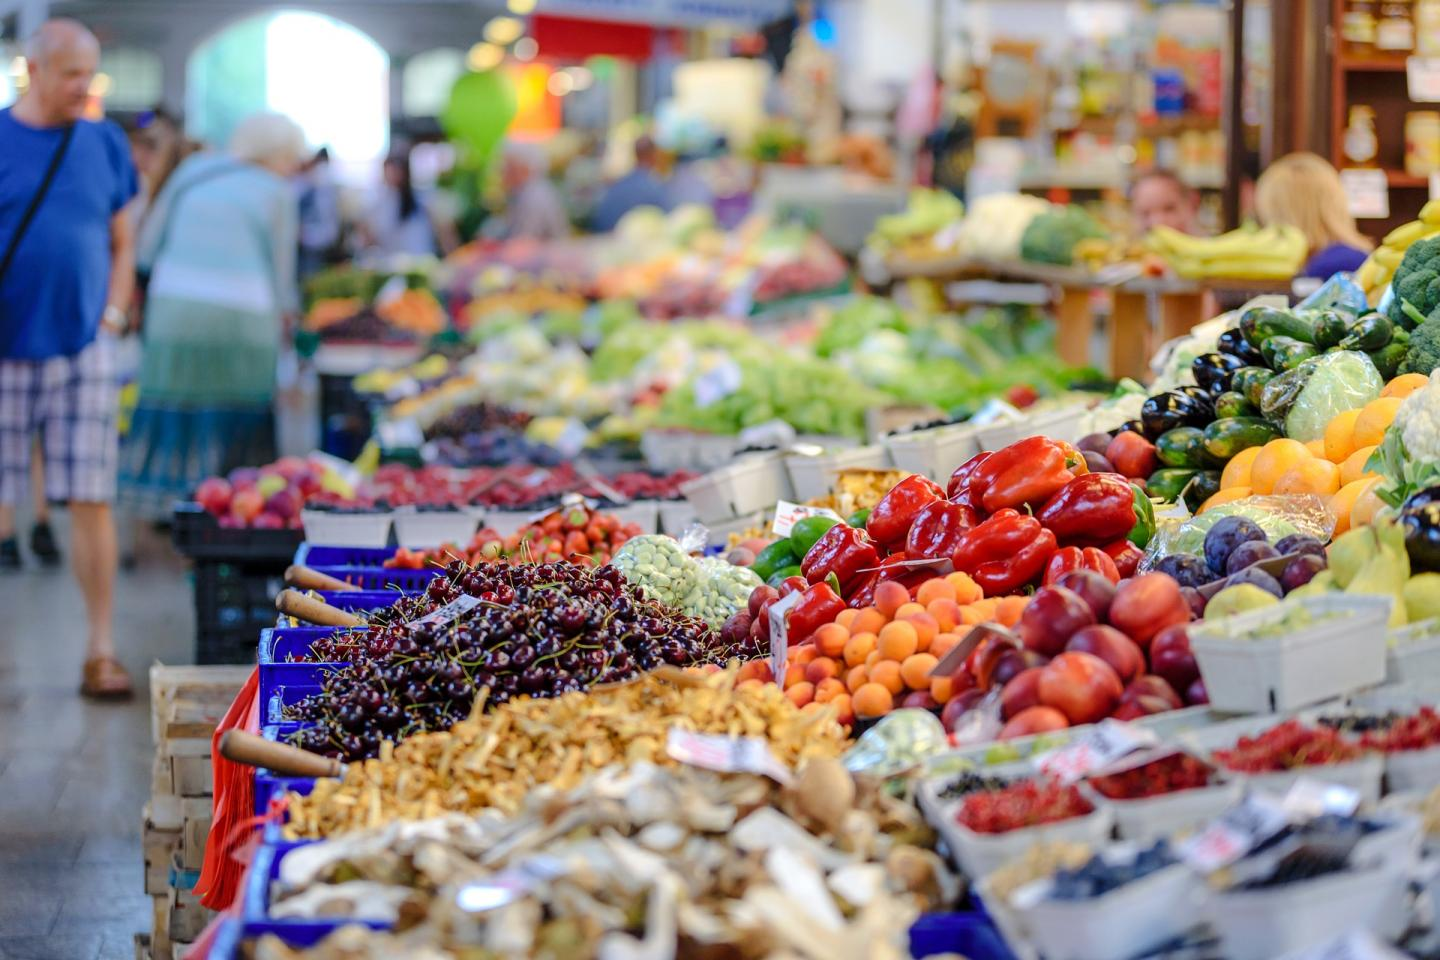 Healthy Food in a Marketplace